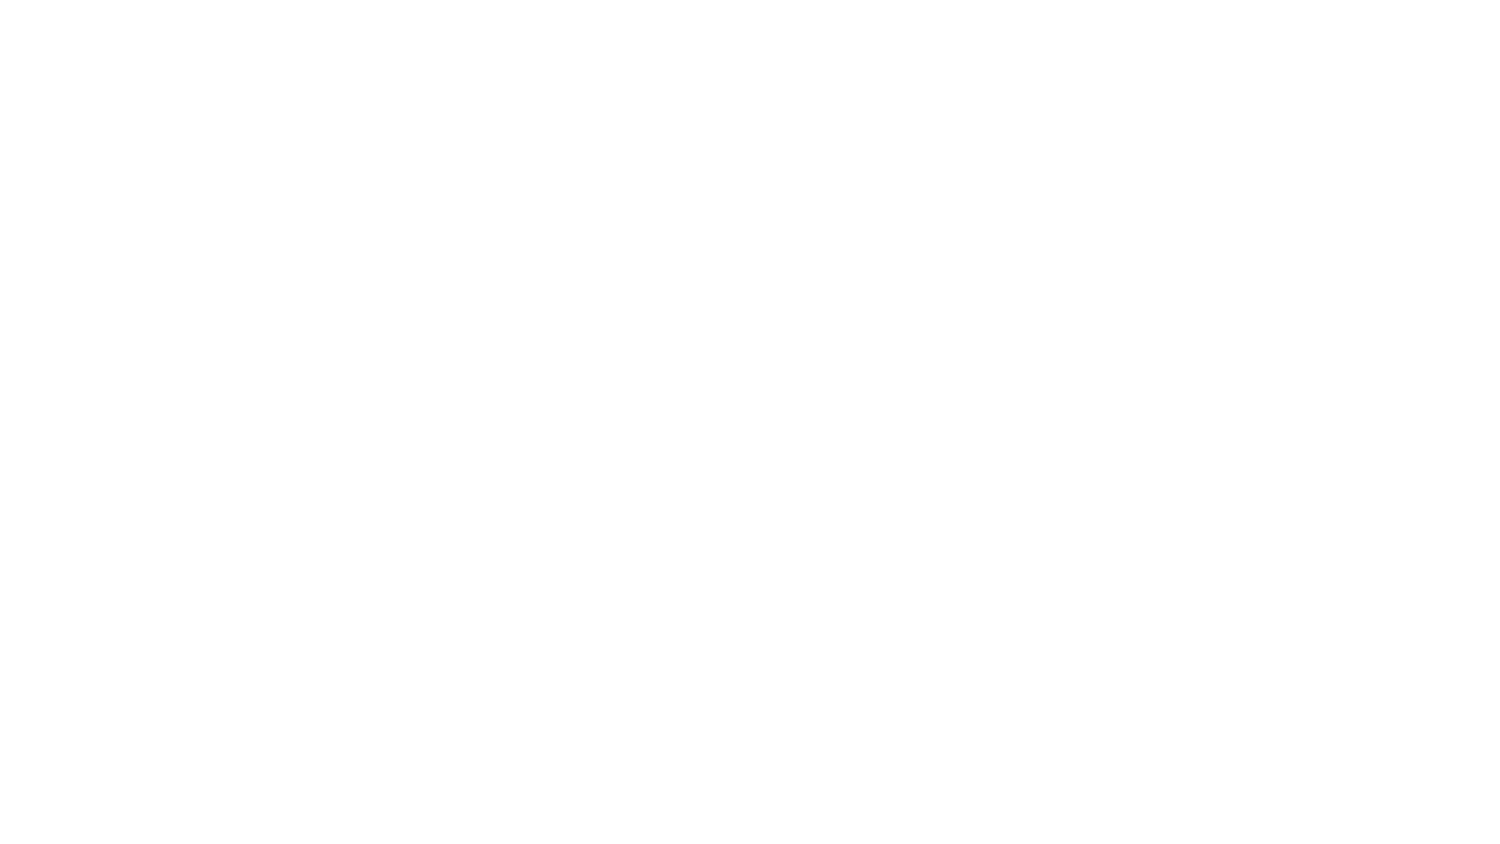 Tucker Photo & Film